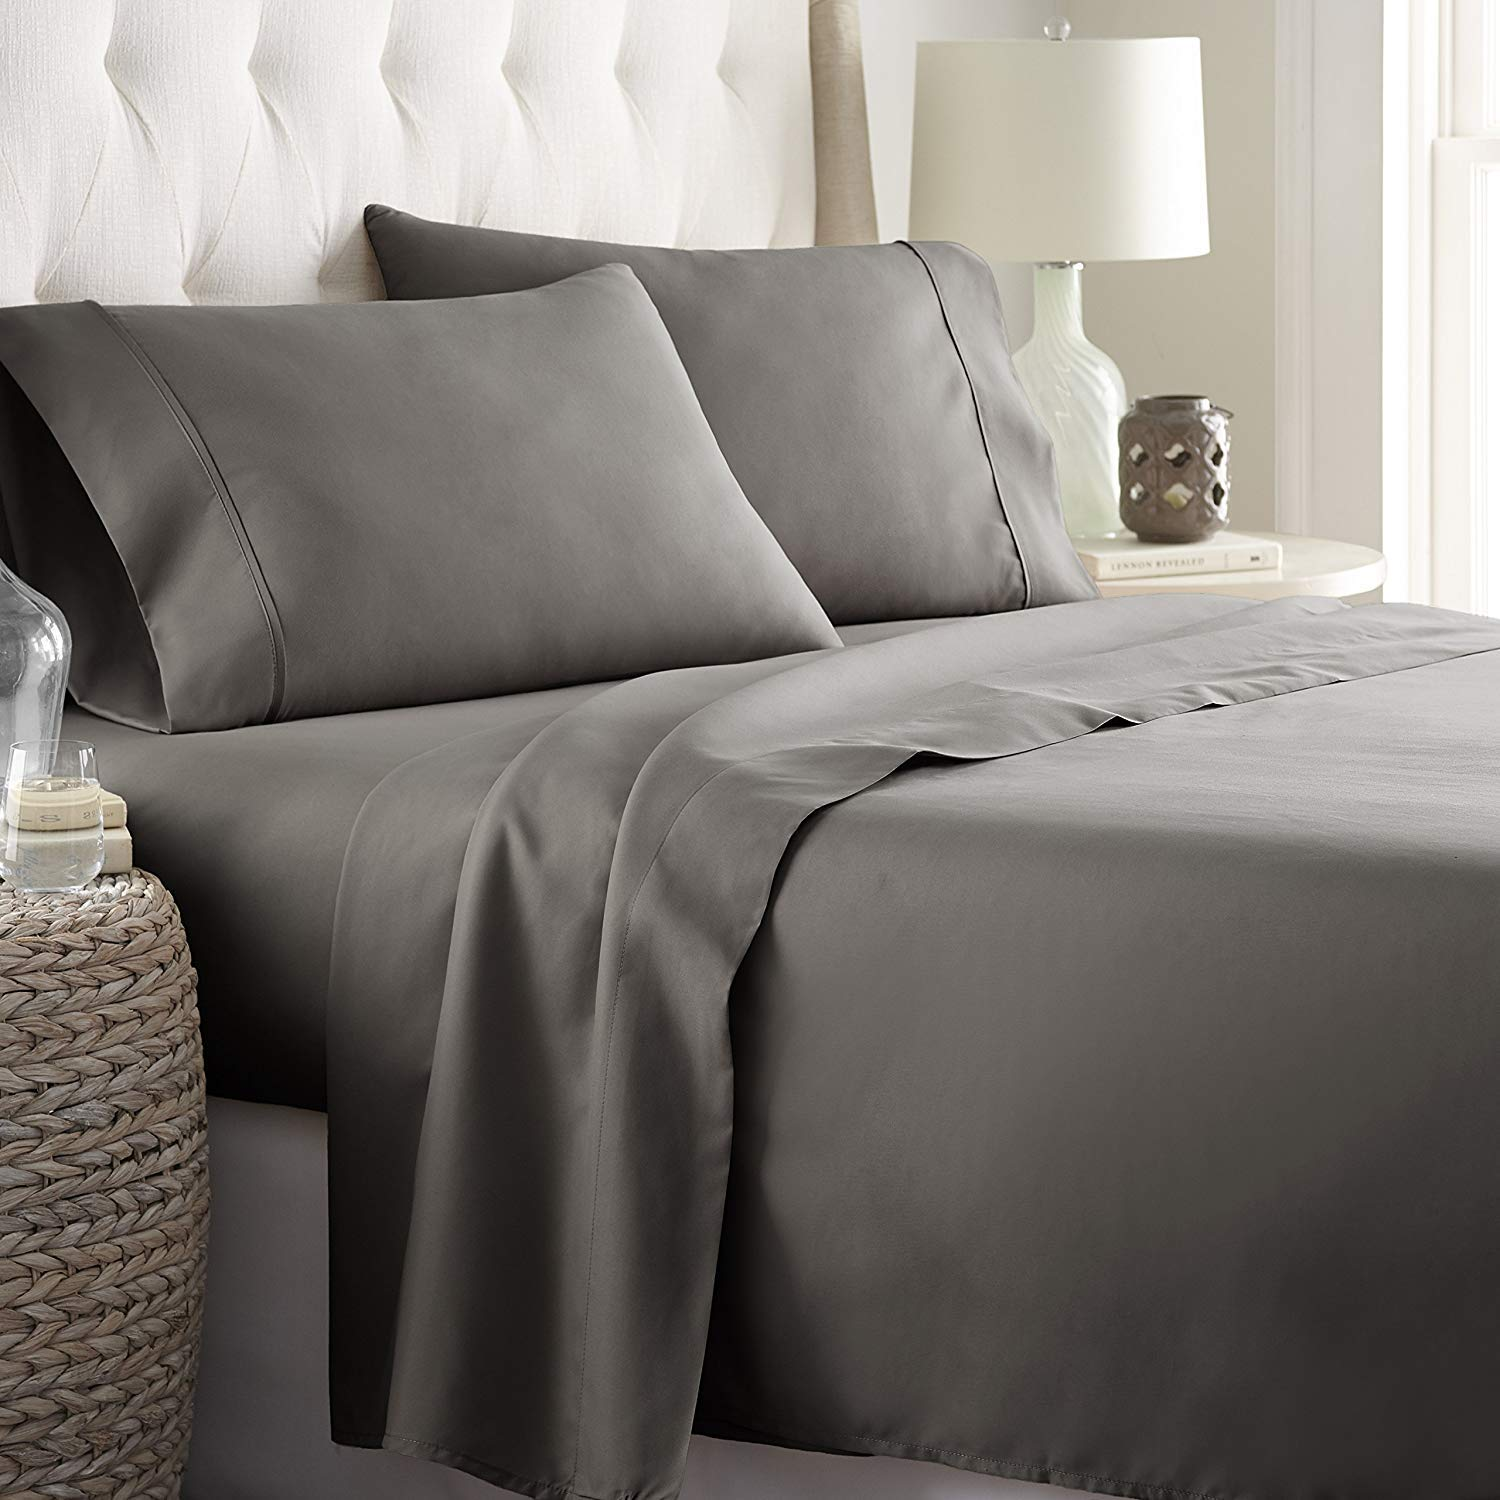 Solid } Queen Size Dark Grey Color { Style Deal of The Day Luxurious /& Comfortable { 600-TC } 4-Piece Bed Sheet Set Super Soft Egyptian Cotton Fits Mattress 15 to 18 Inch Deep Pocket